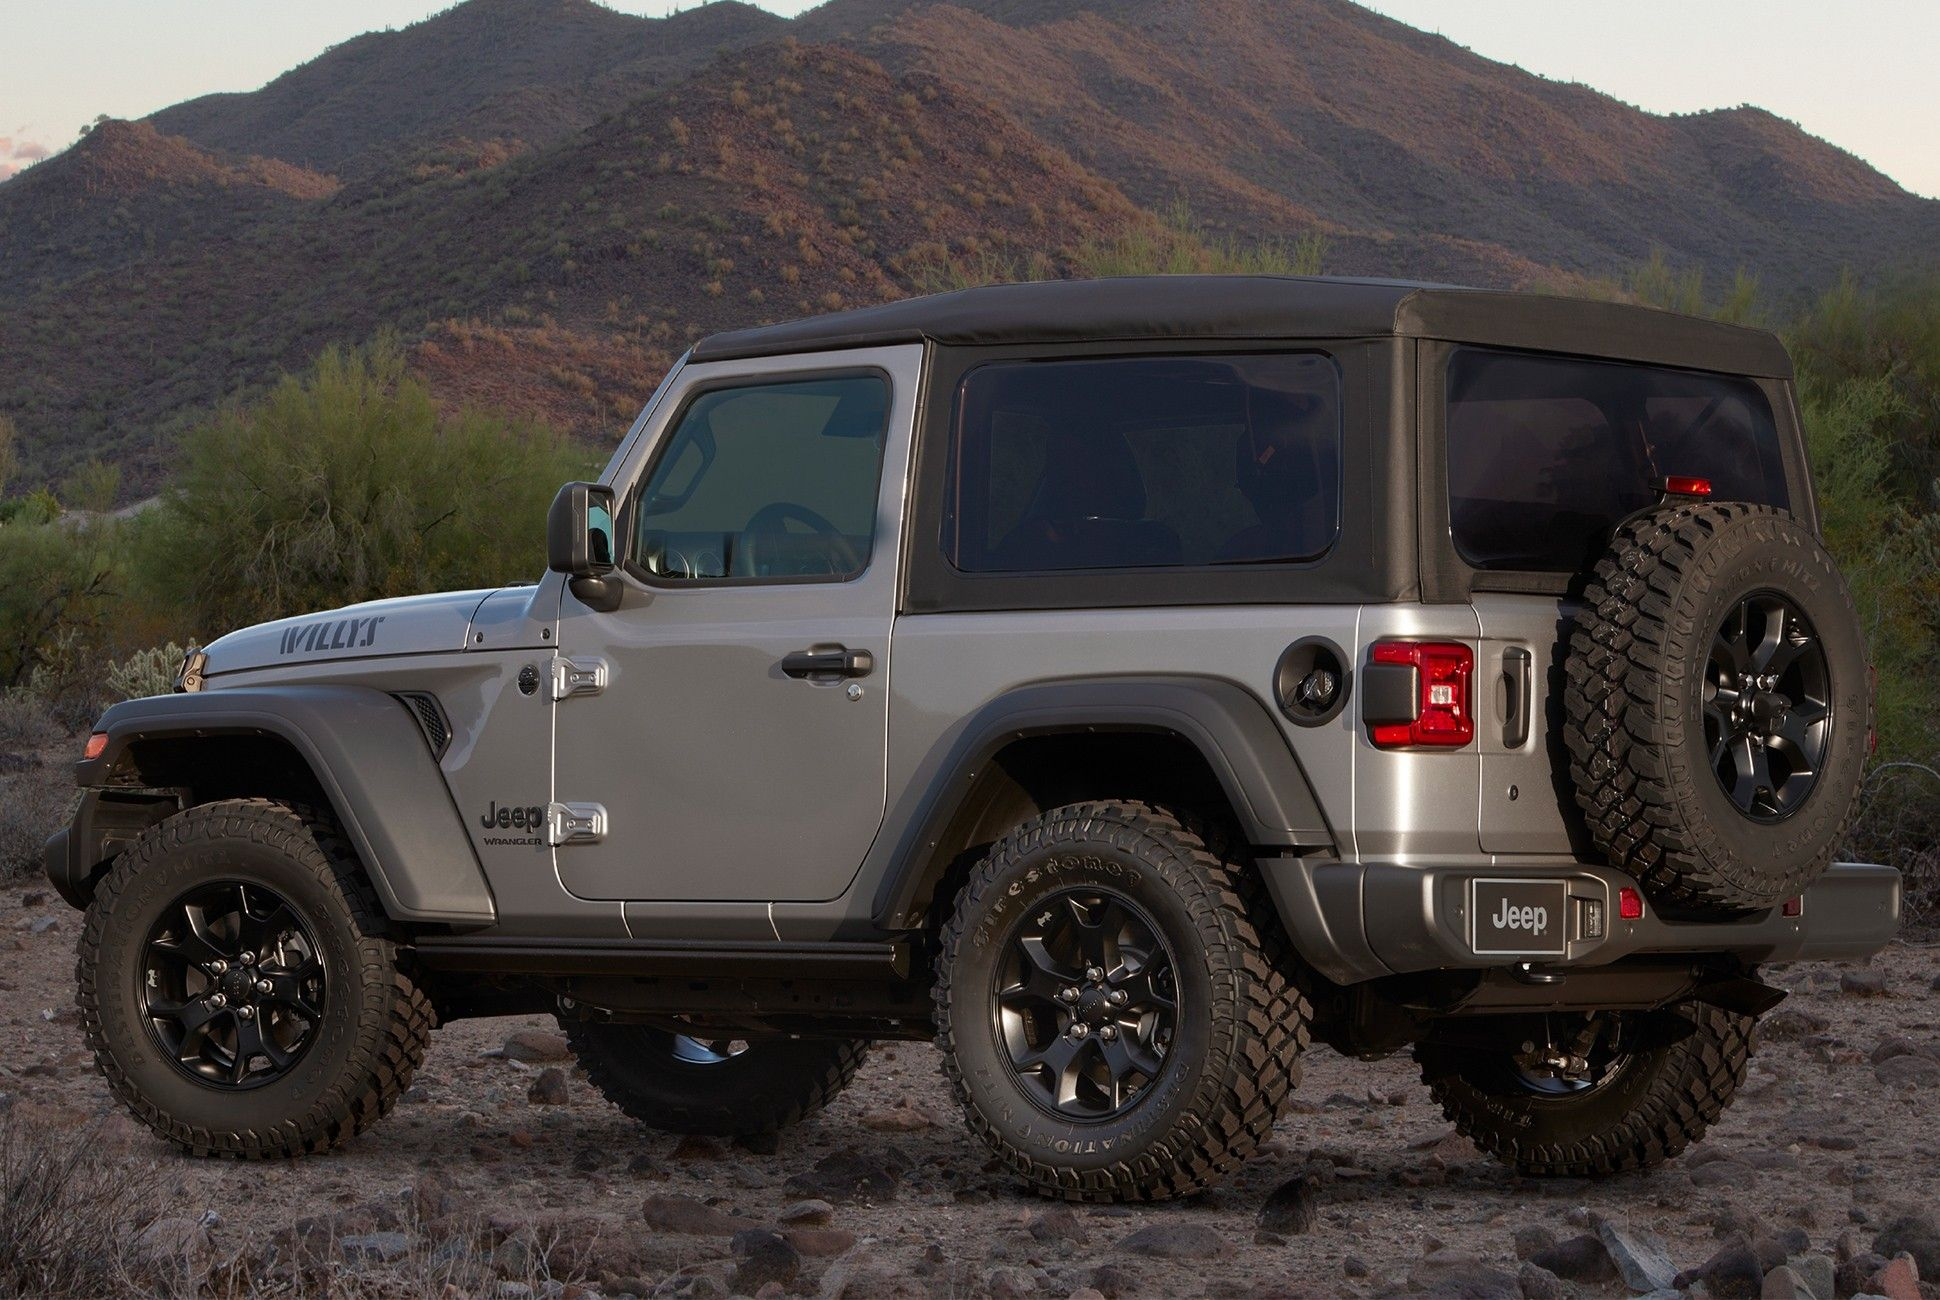 Pin By James Wright On James Car Stuff Jeep Jeep Wrangler Jeep Gladiator